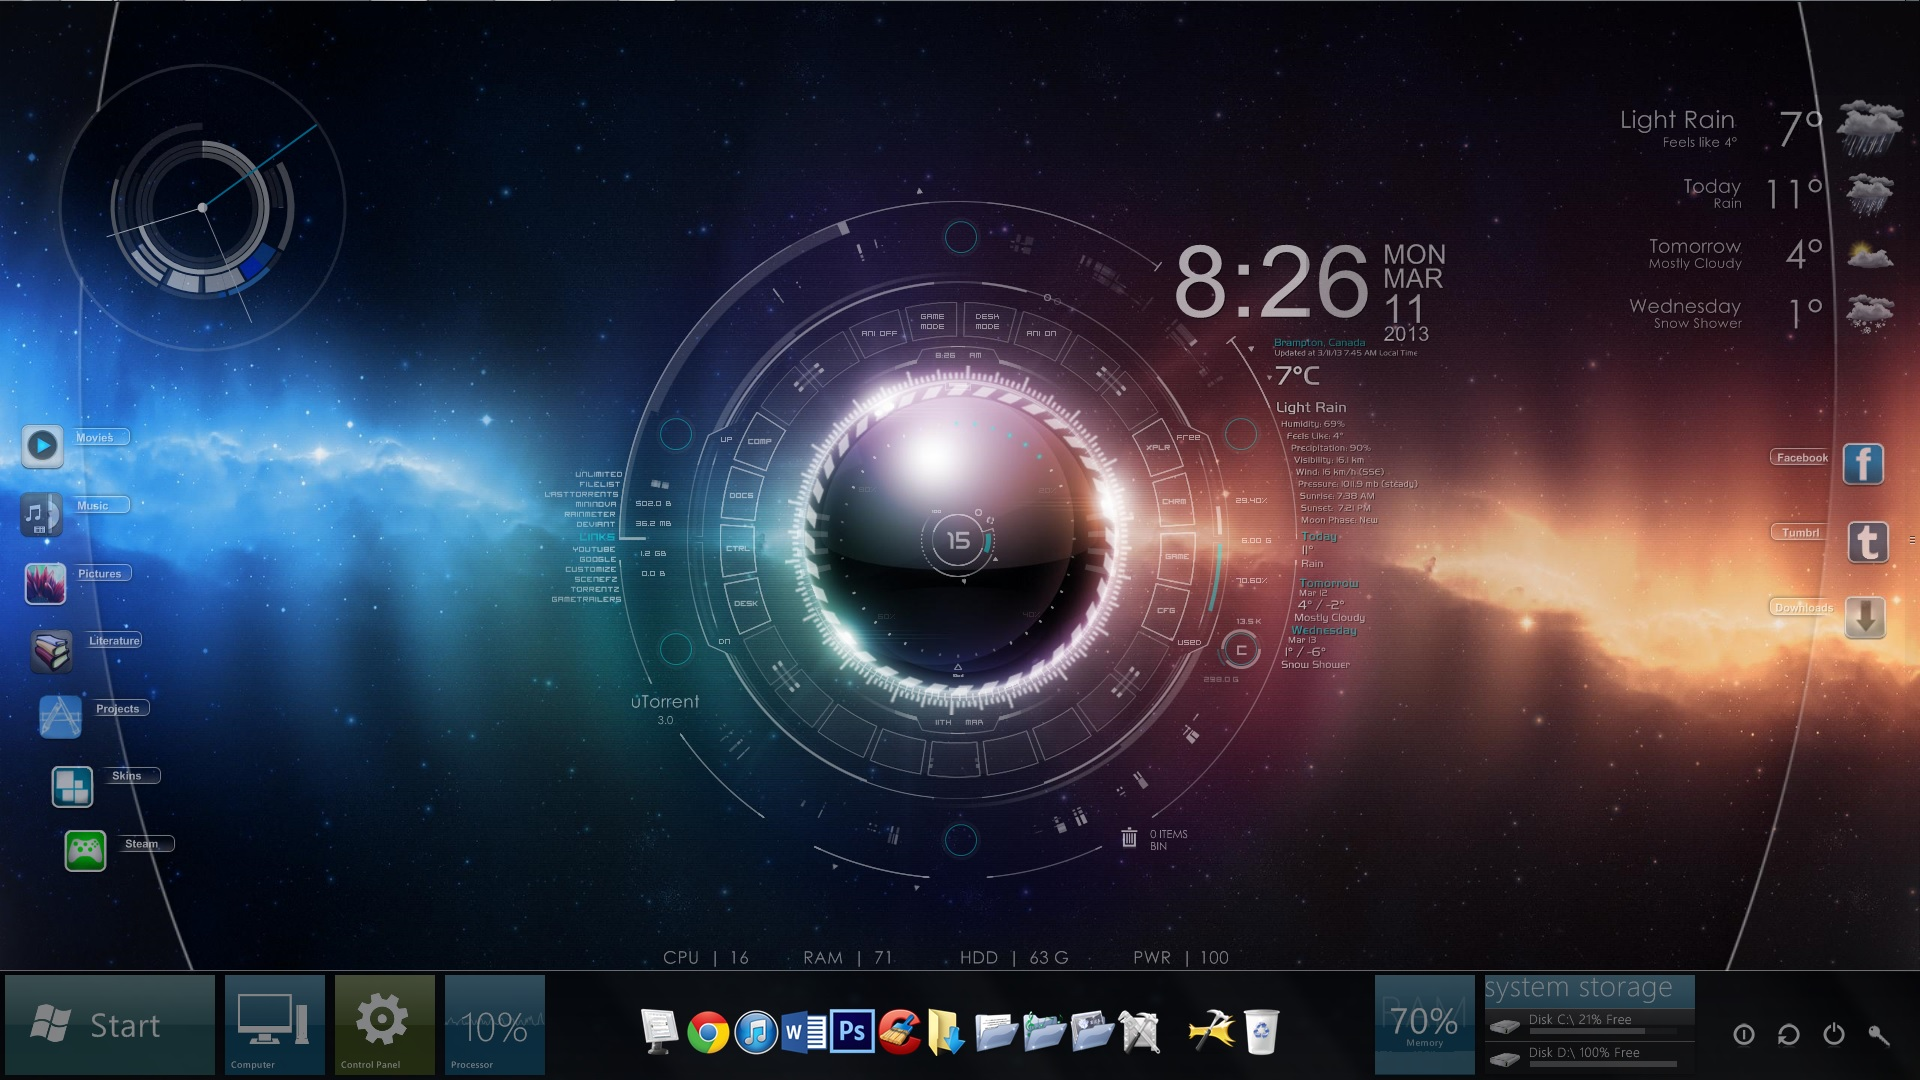 free download wallpapers rainmeter - photo #6